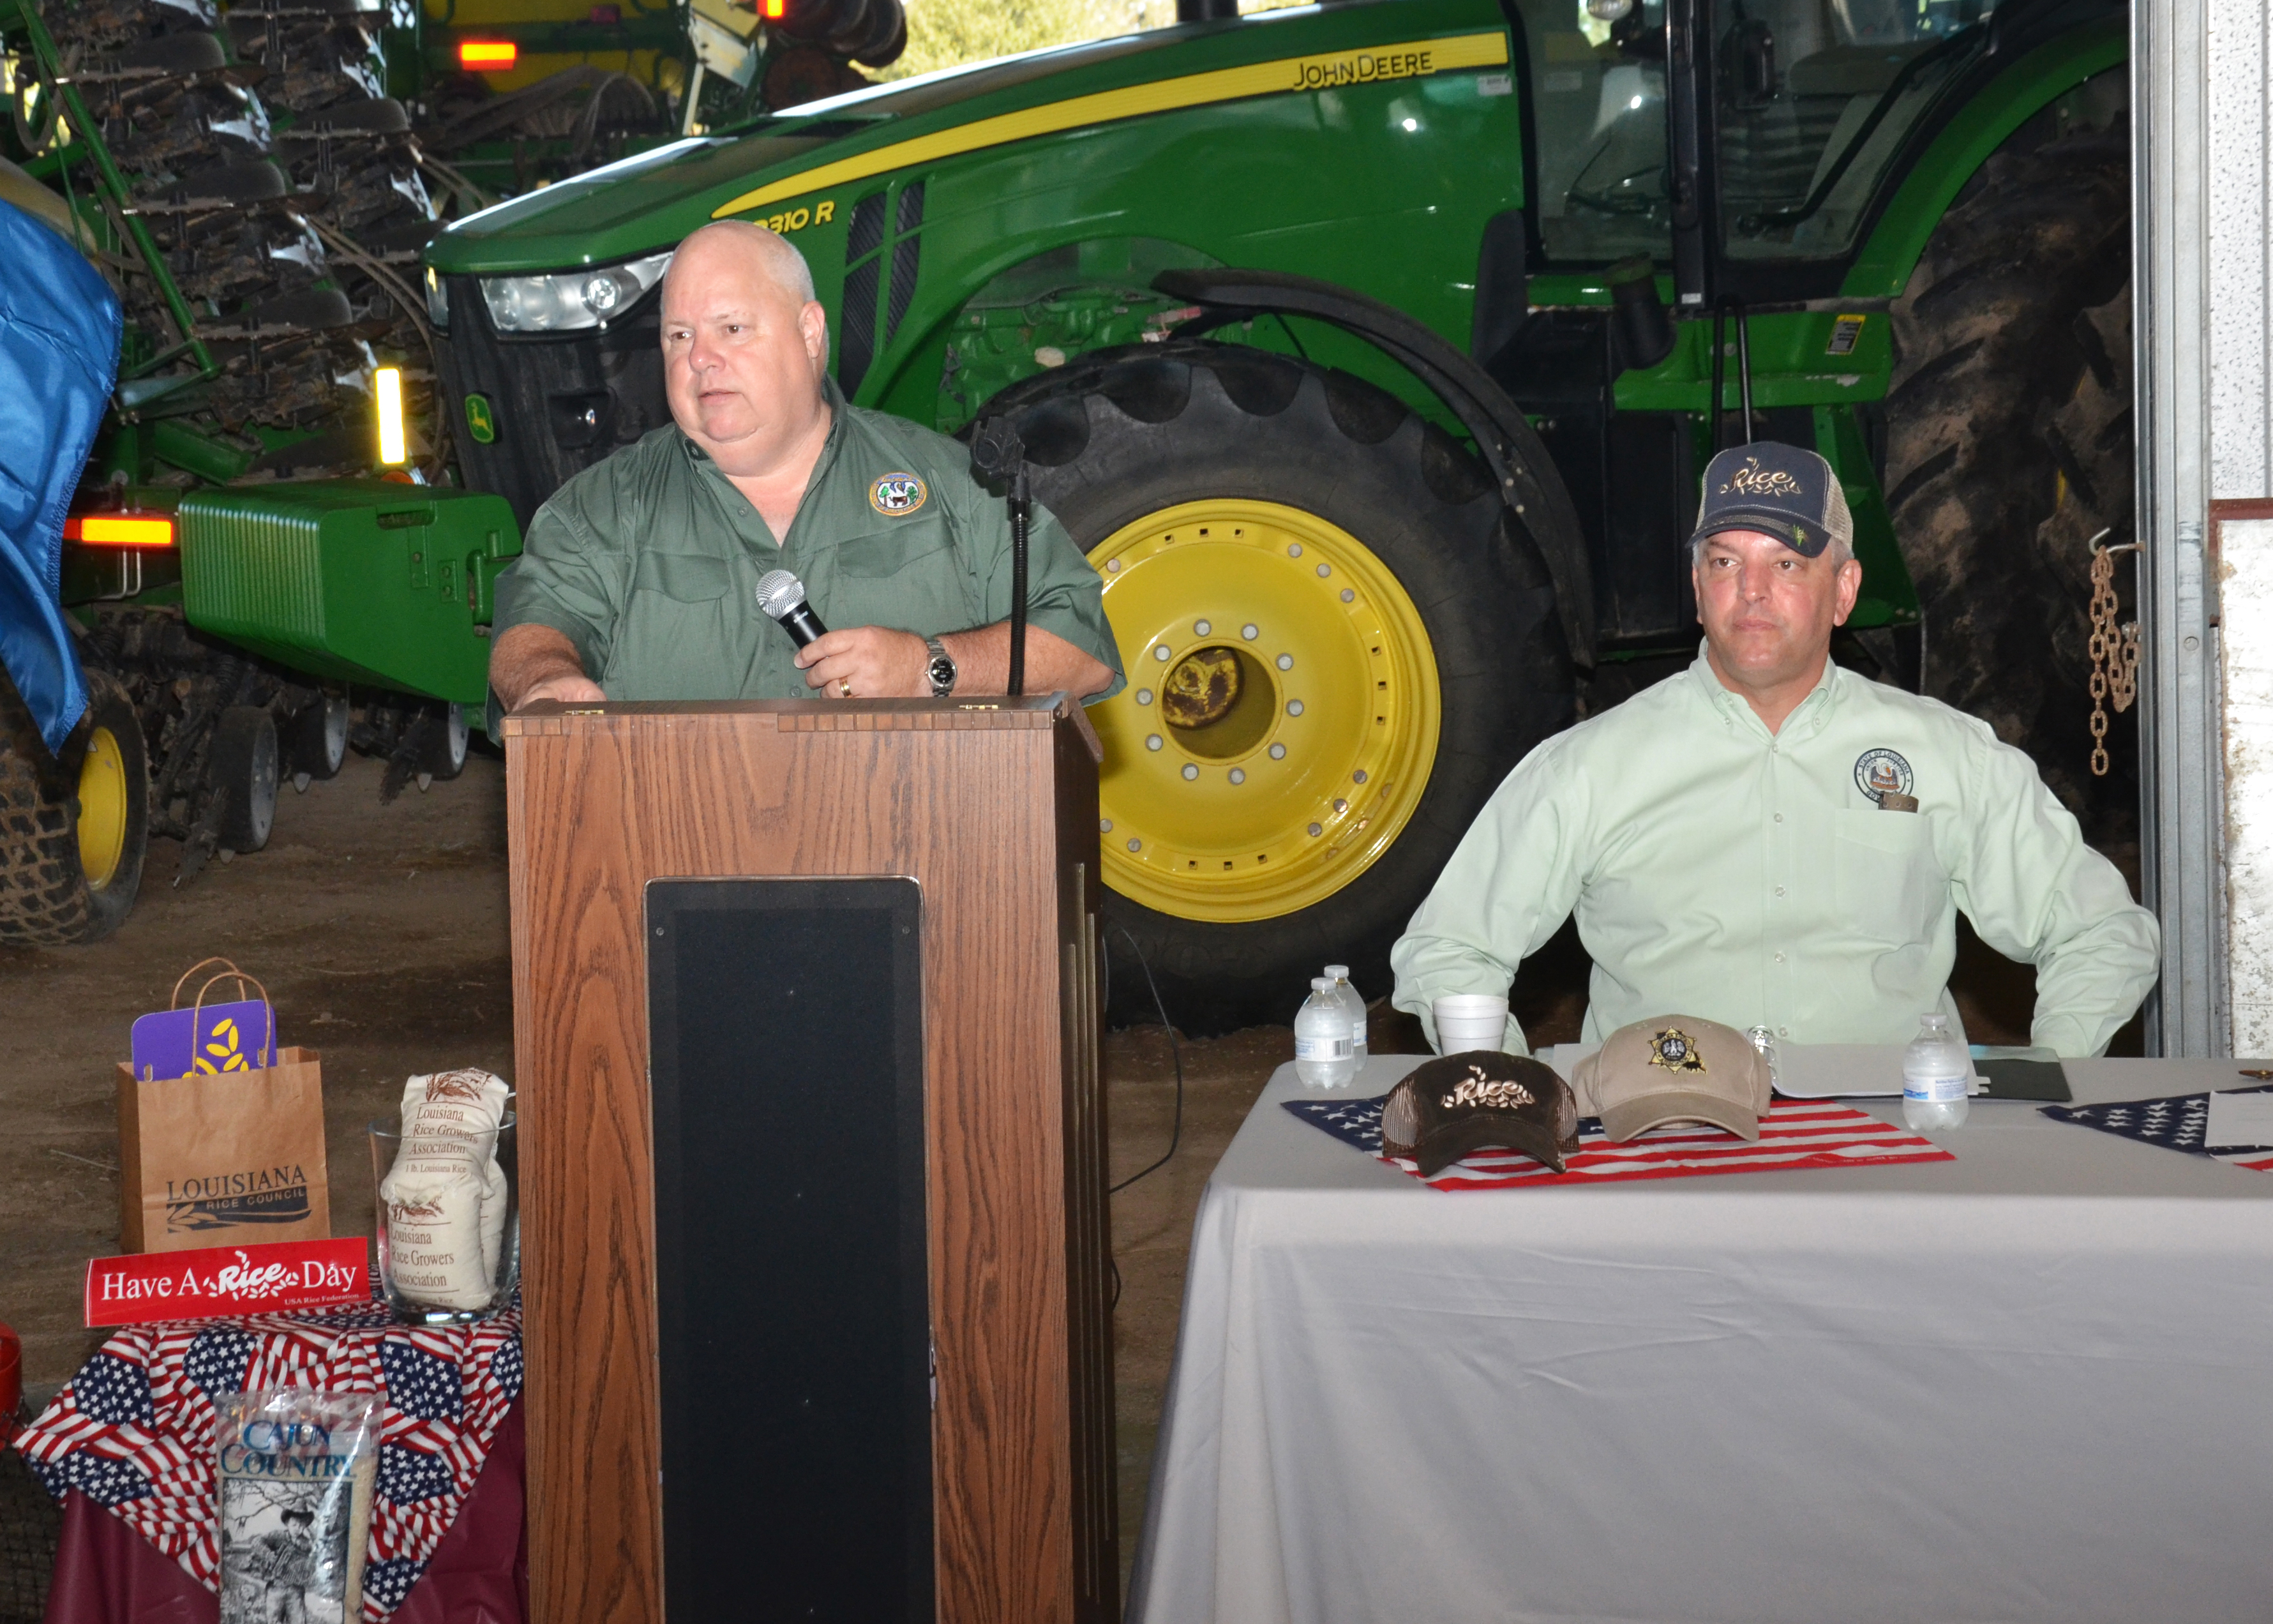 Farmers voice concerns about infrastructure, labor during listening tour with state officials